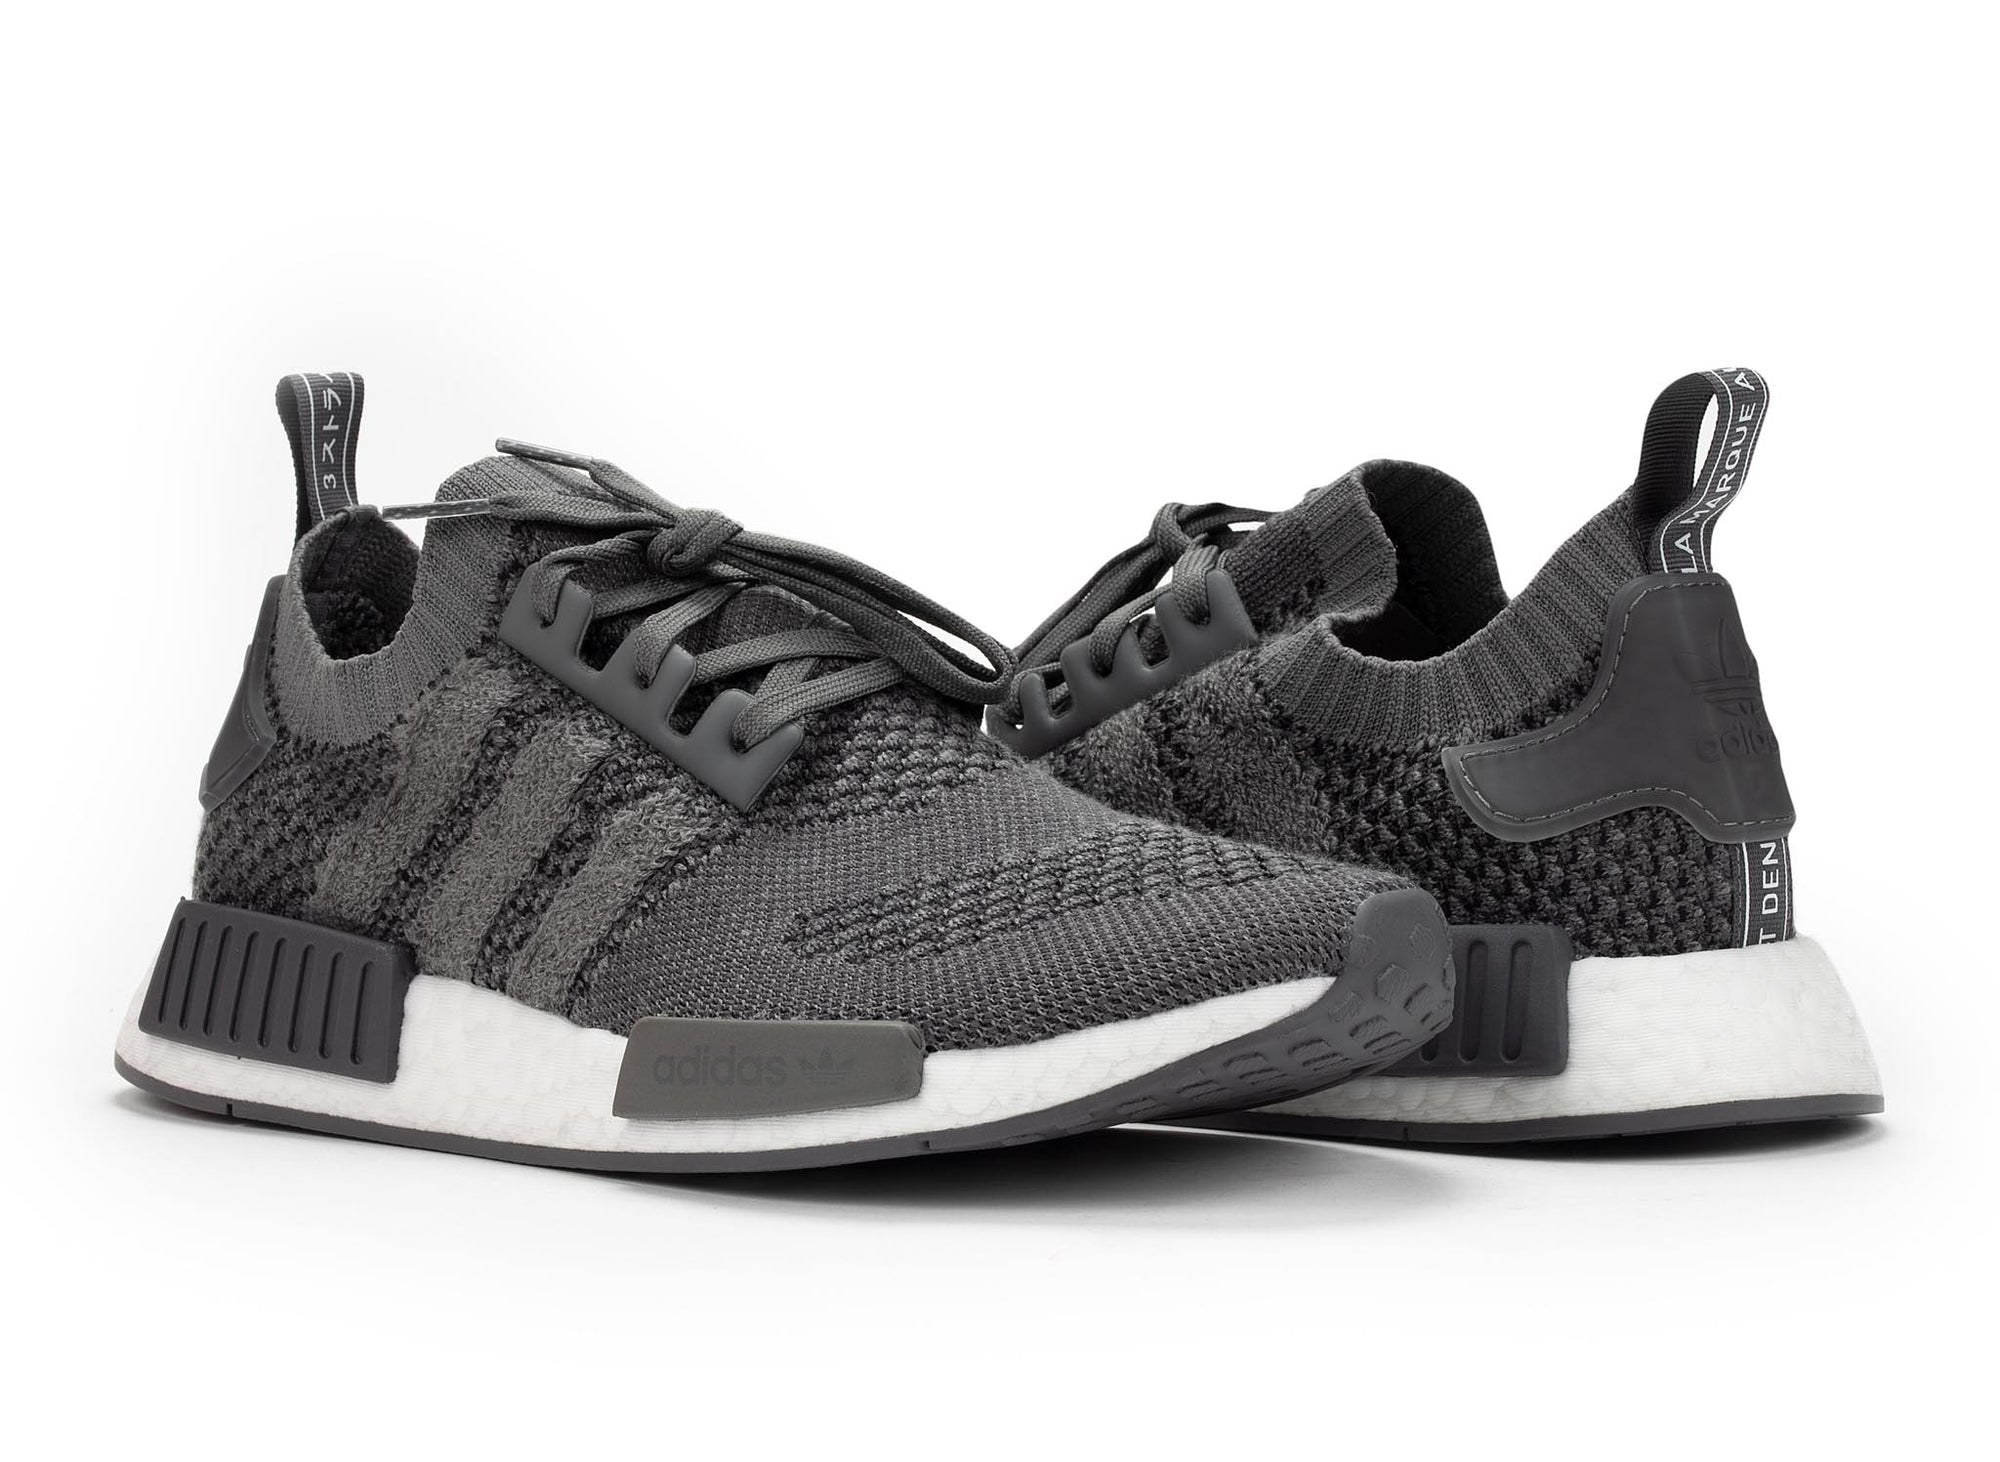 Adidas NMD R1 Primeknit Triple Black New Release